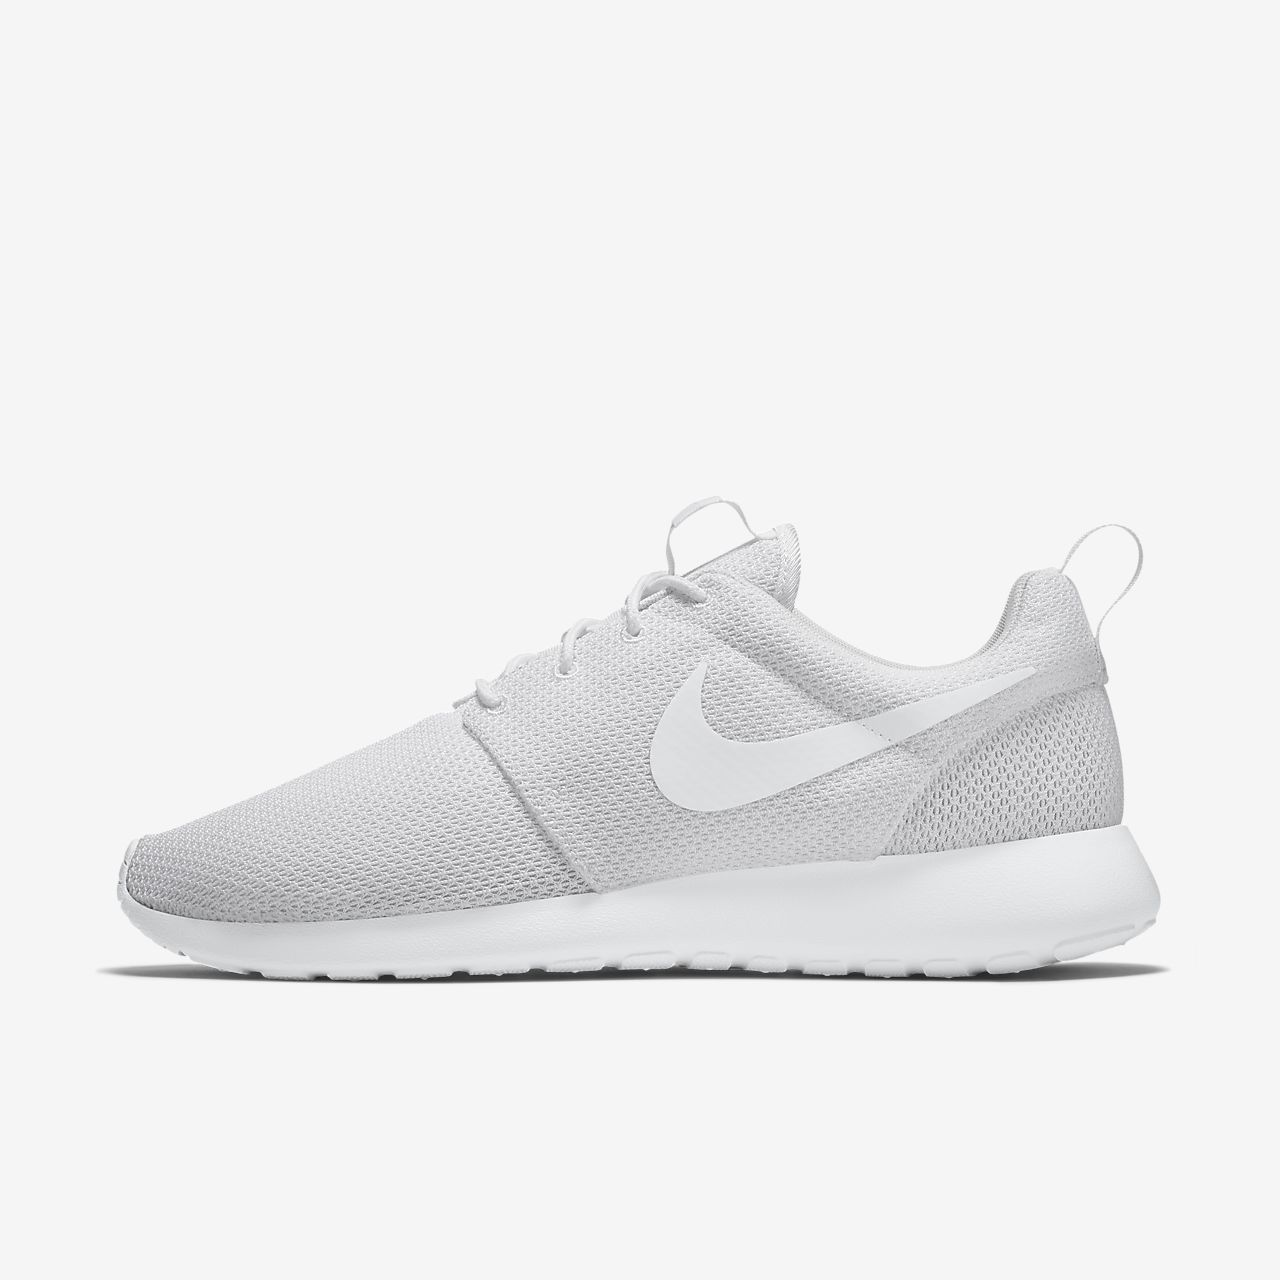 3d687dcf3a425 Nike Roshe One Men s Shoe. Nike.com